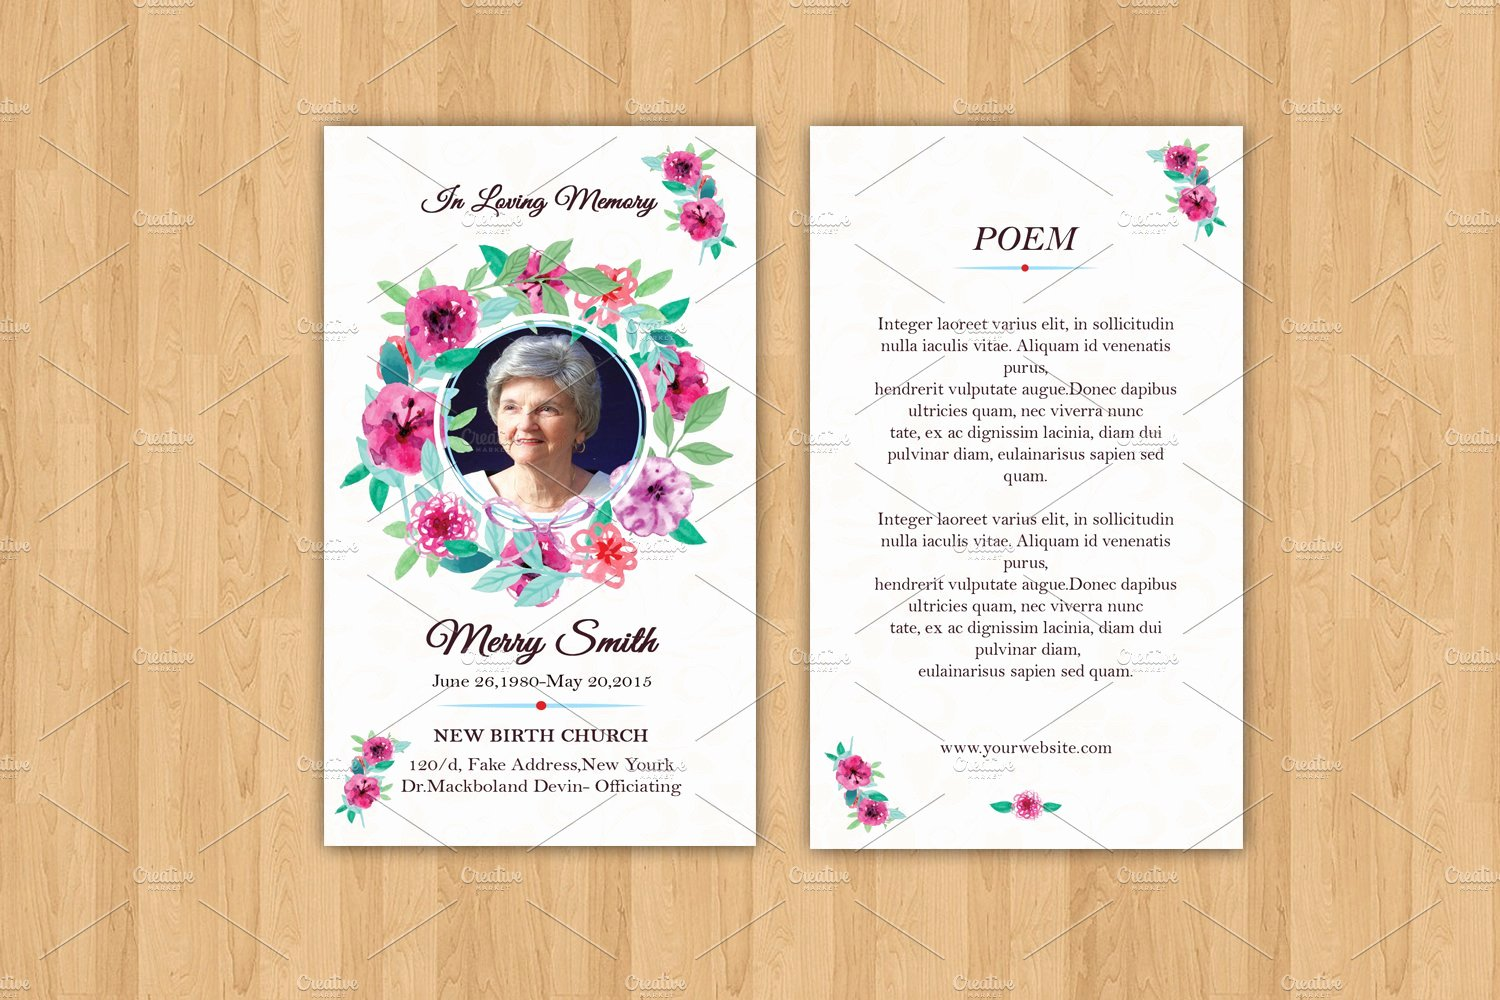 Funeral Prayer Cards Templates Inspirational Funeral Prayer Card Template V615 Card Templates